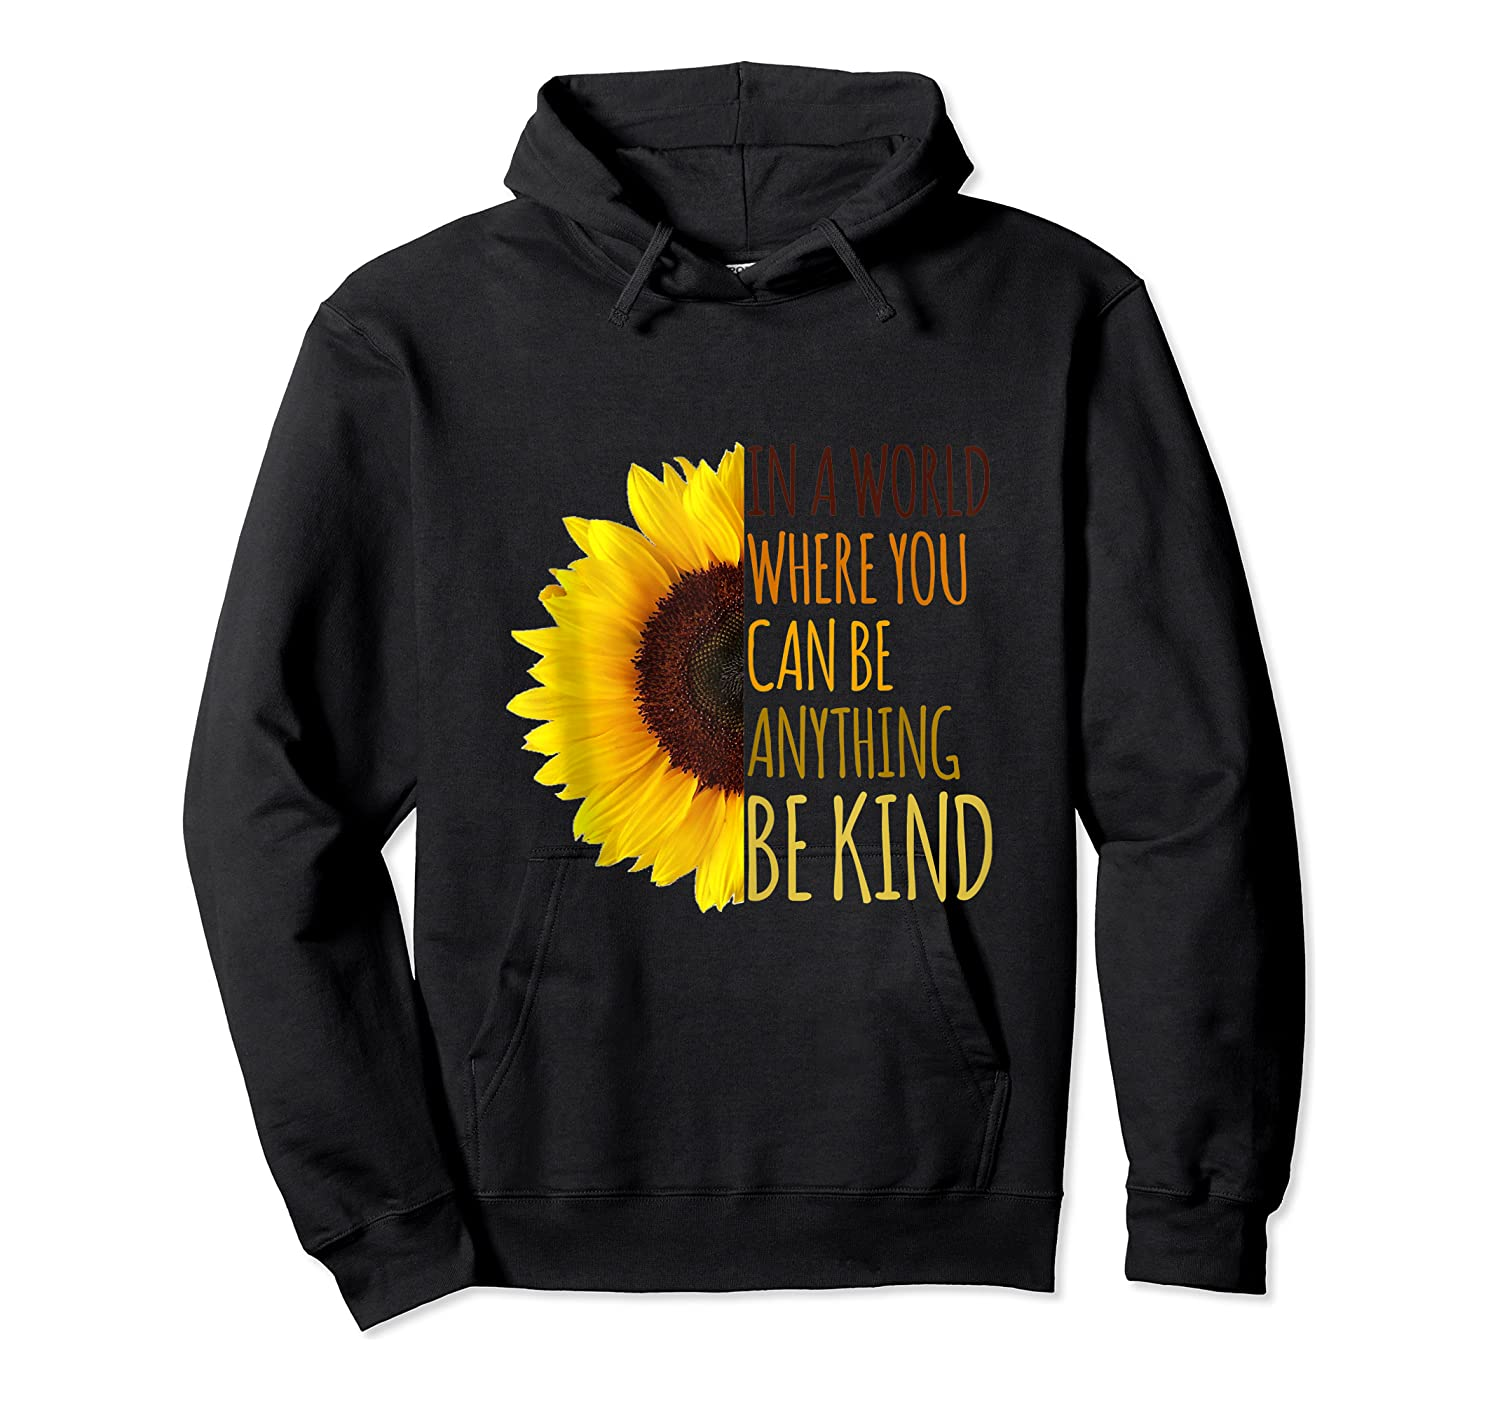 In A World Where You Can Be Anything Be Kind, Kindness Shirts Unisex Pullover Hoodie